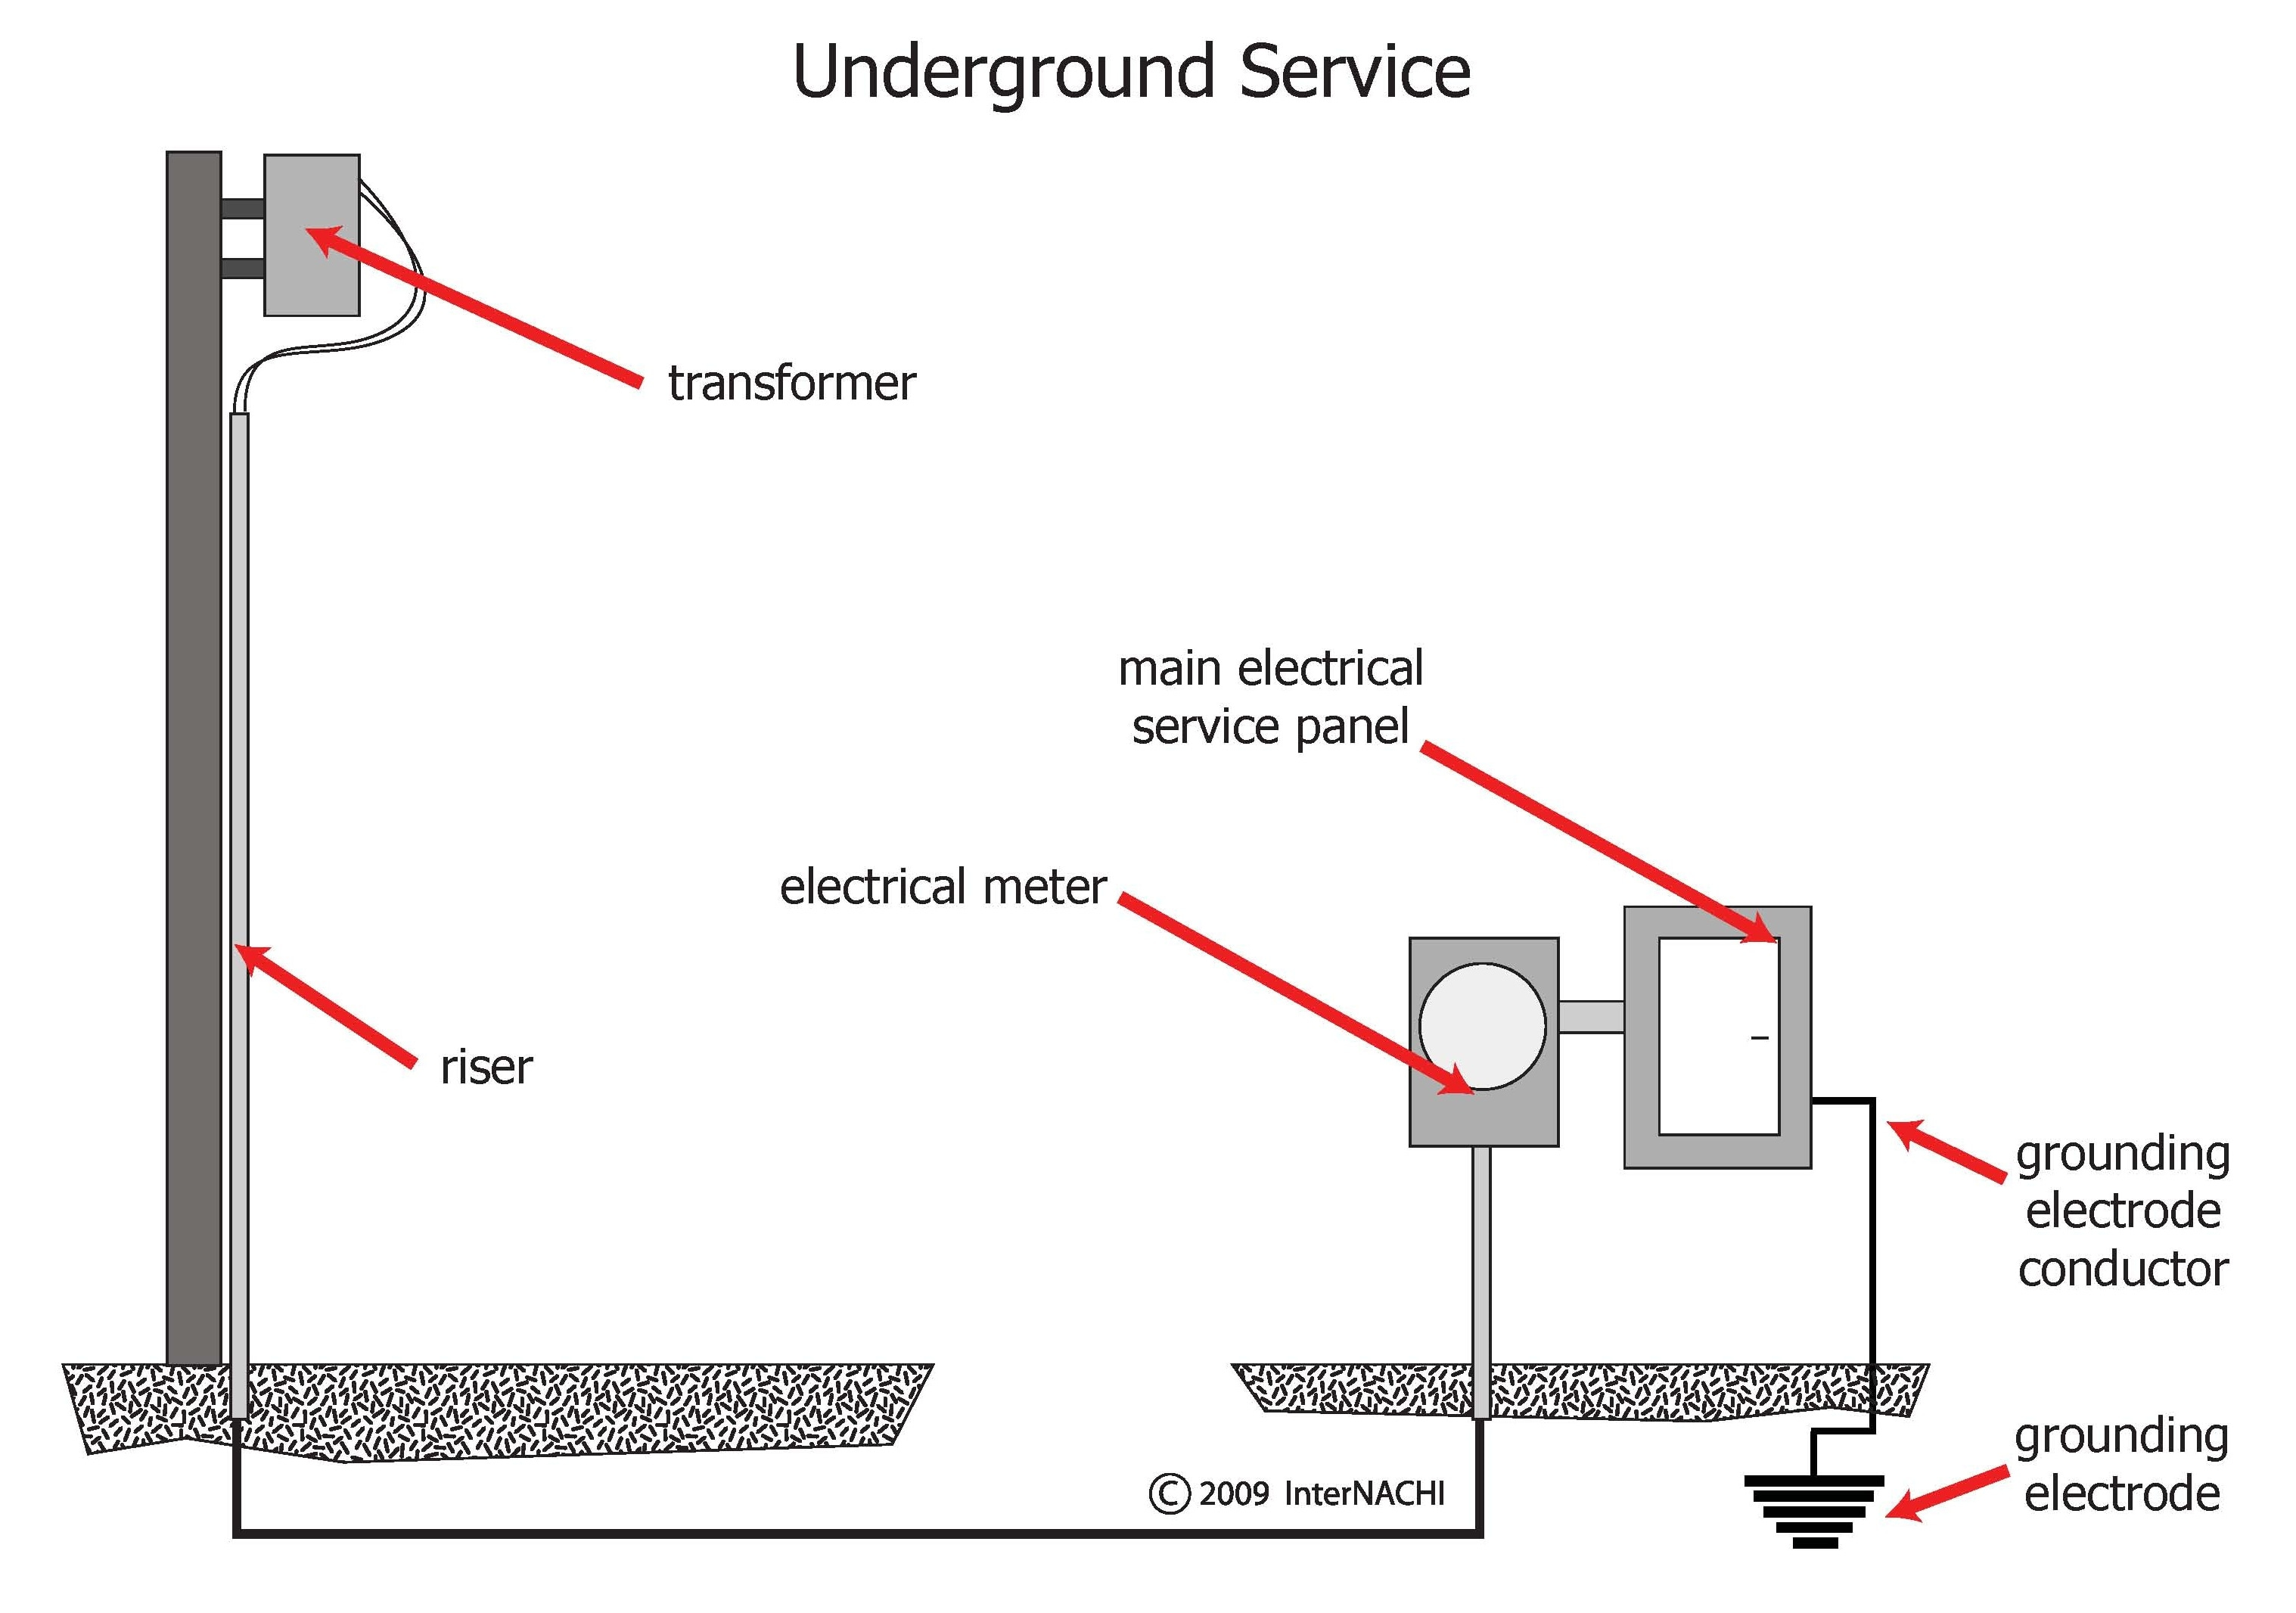 Underground Service - Inspection Gallery